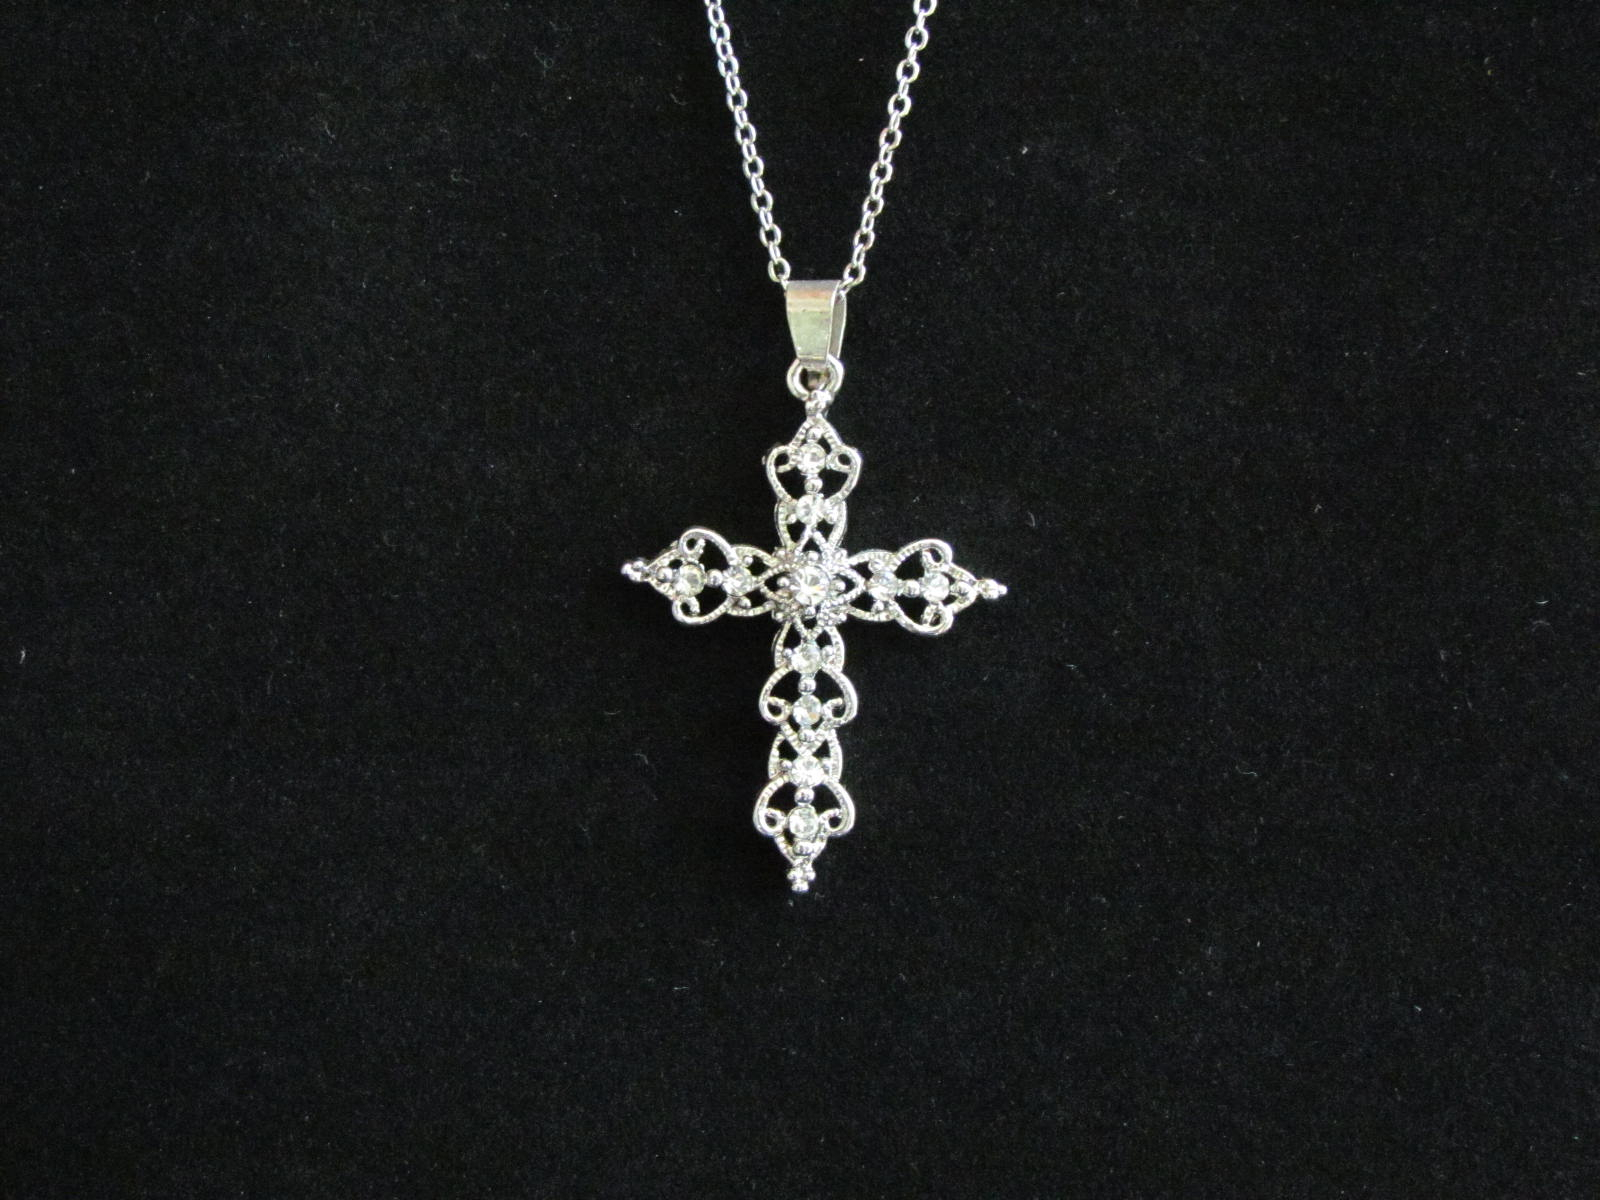 Sparkling Cross Necklace – 1 In Most Recent Sparkling Cross Pendant Necklaces (View 15 of 25)